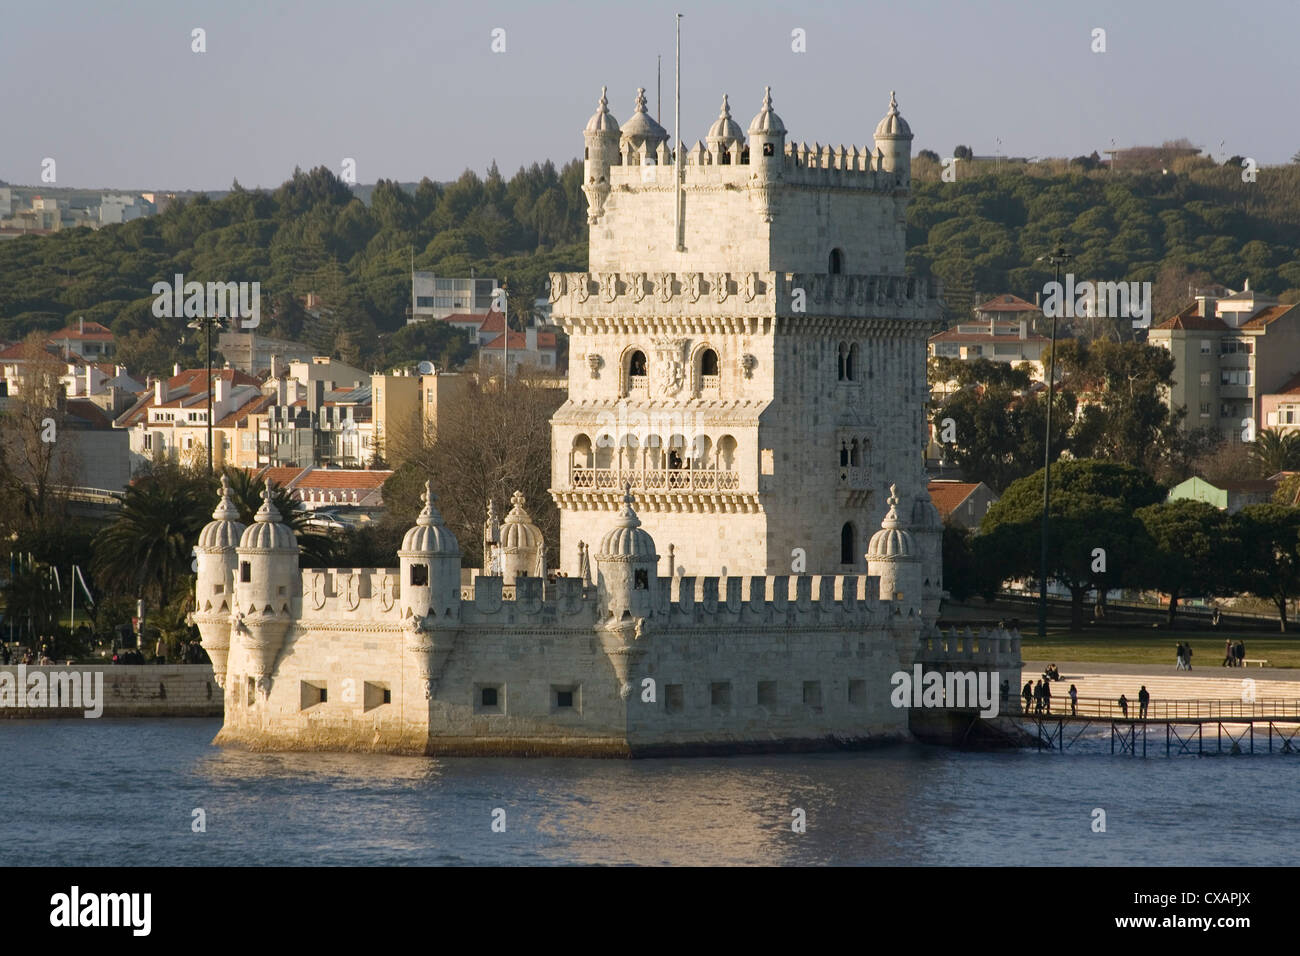 Tower of Belem, UNESCO World Heritage Site, and River Tagus, Belem, Lisbon, Portugal, Europe - Stock Image